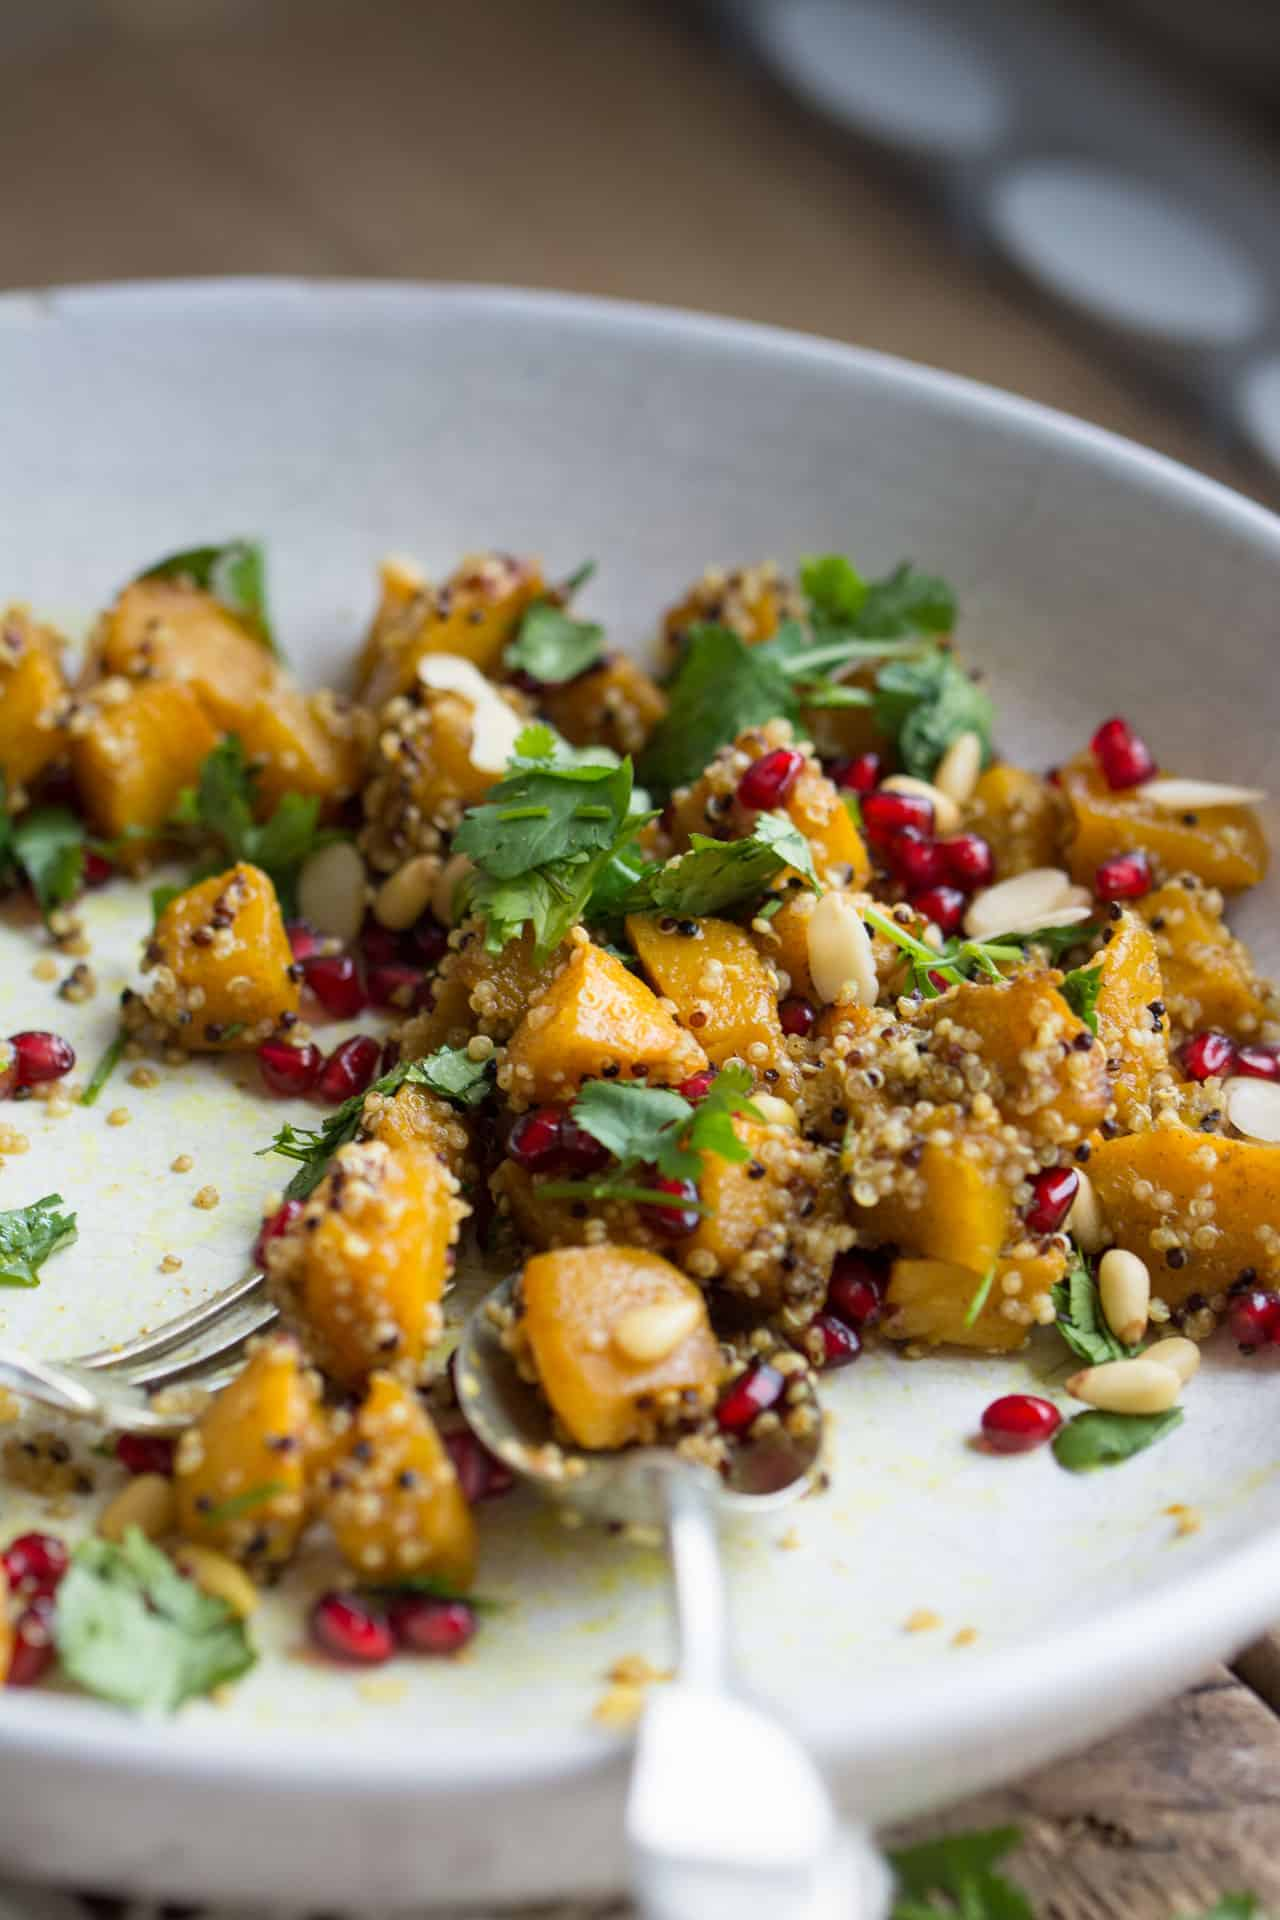 Autumn salad with pumpkin, quinoa and pomegranate in a bowl